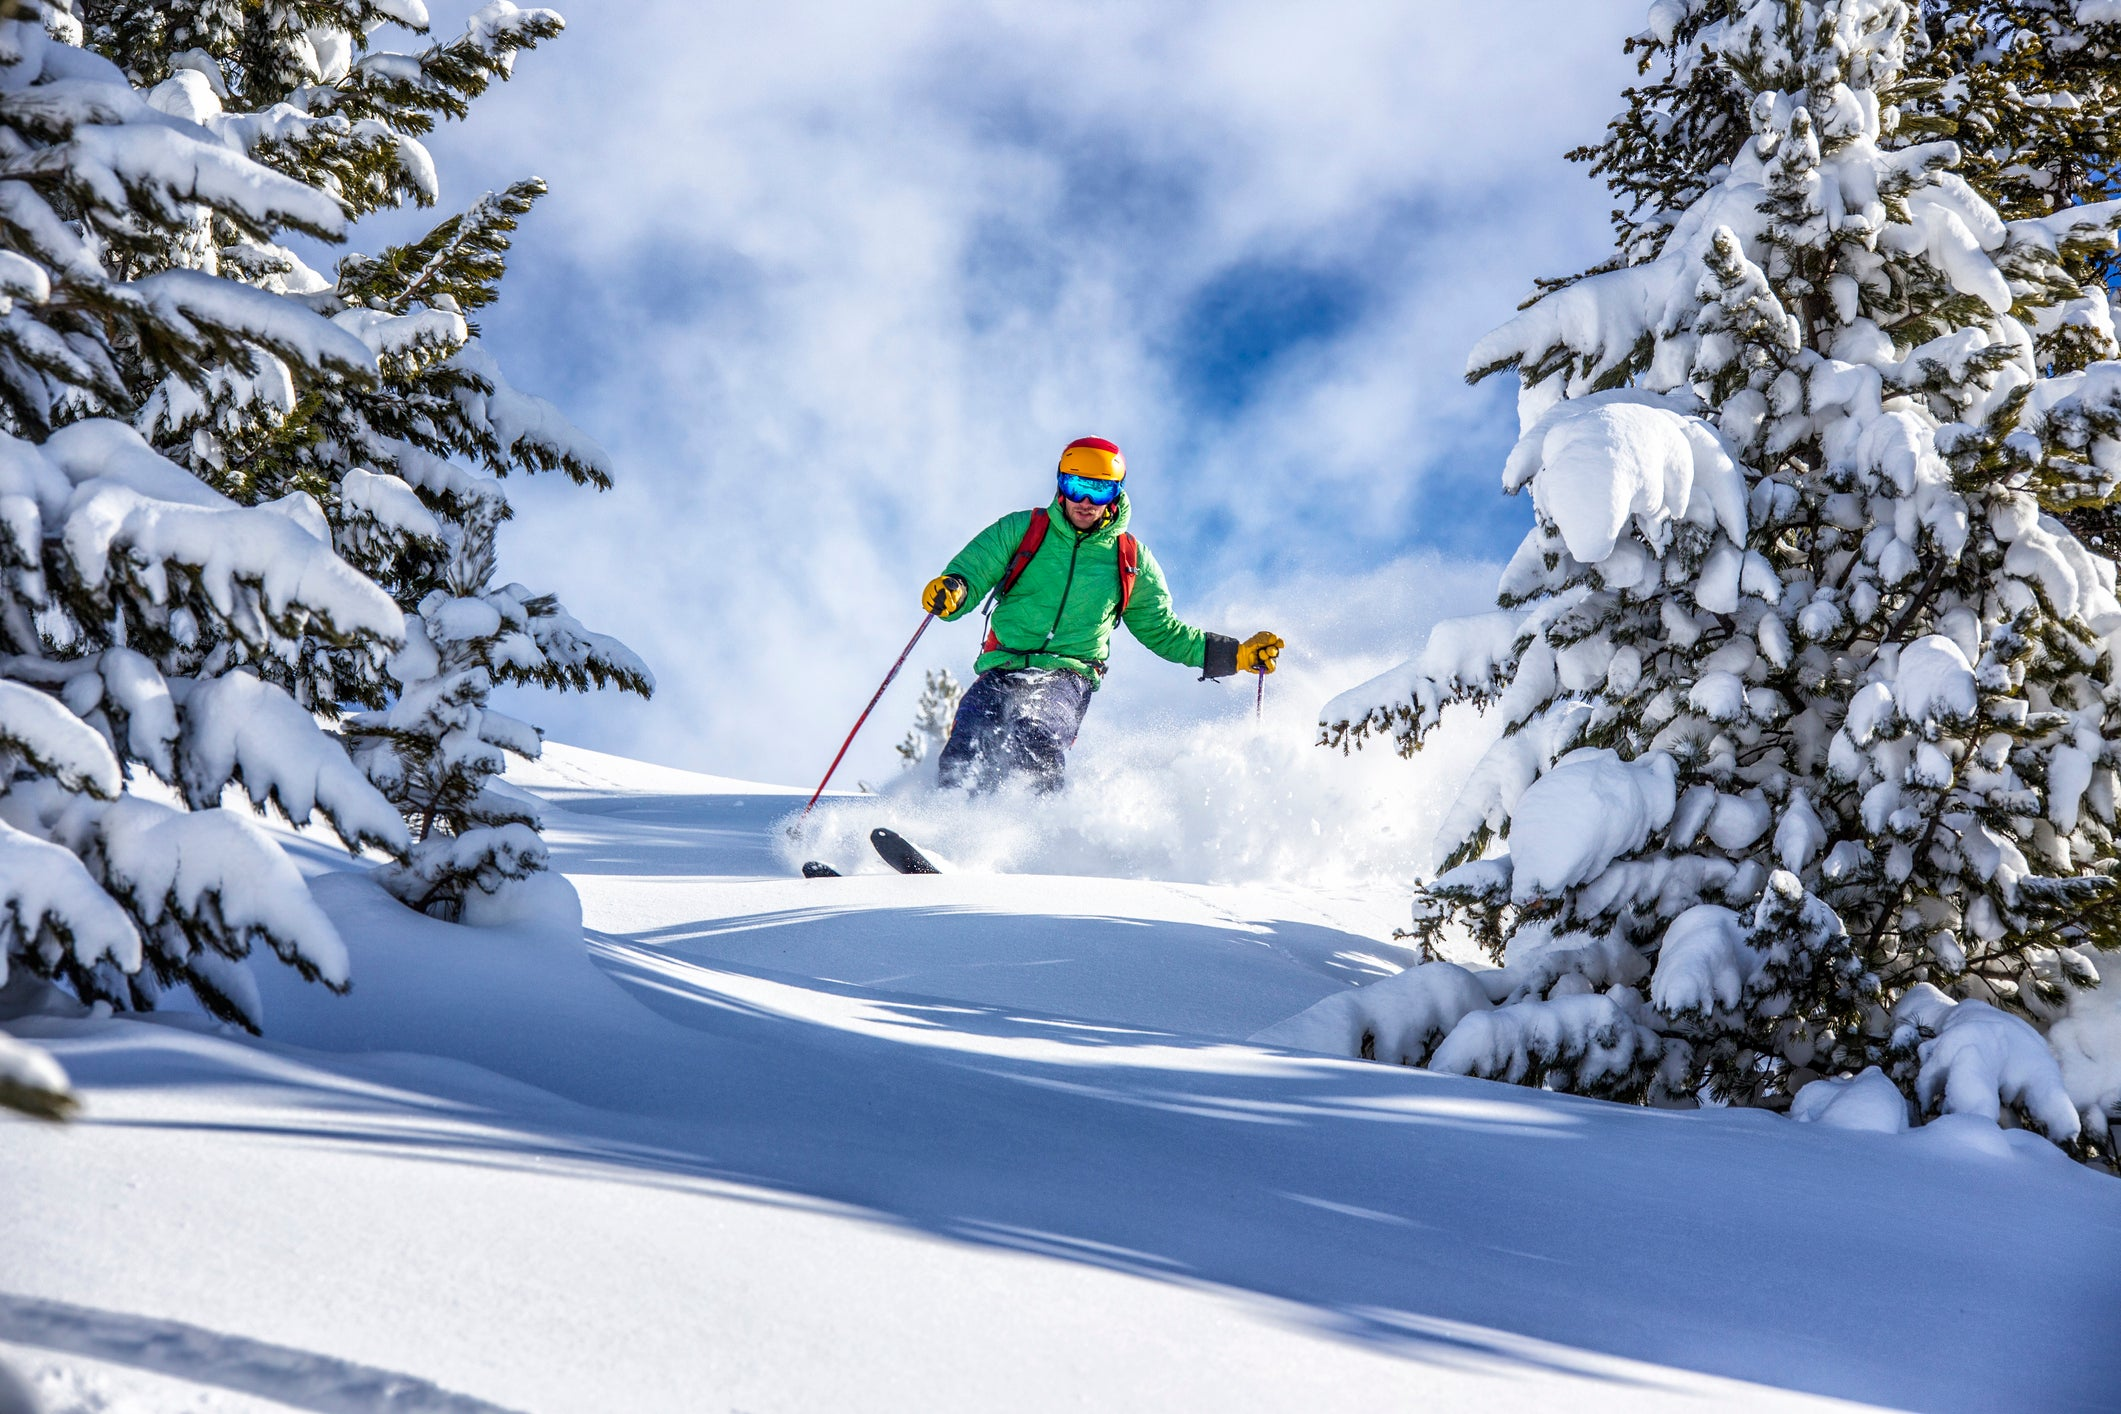 Why Vail Resorts Just Withdrew Its 2020 Outlook